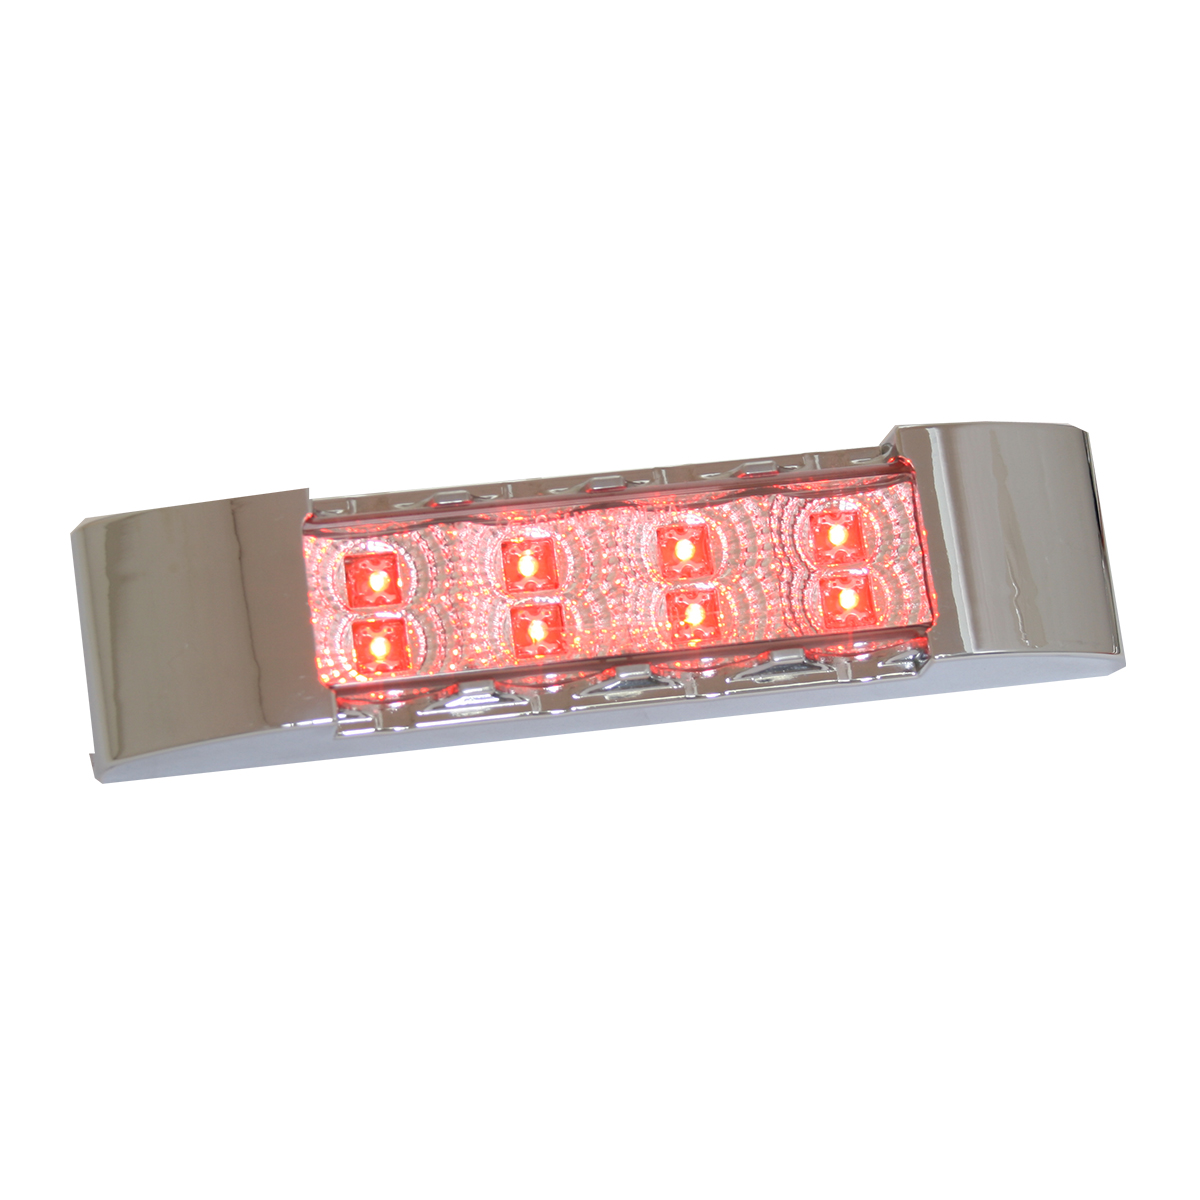 76173 Slim Rectangular Spyder LED Light in Red/Clear with Chrome Plastic Bezel